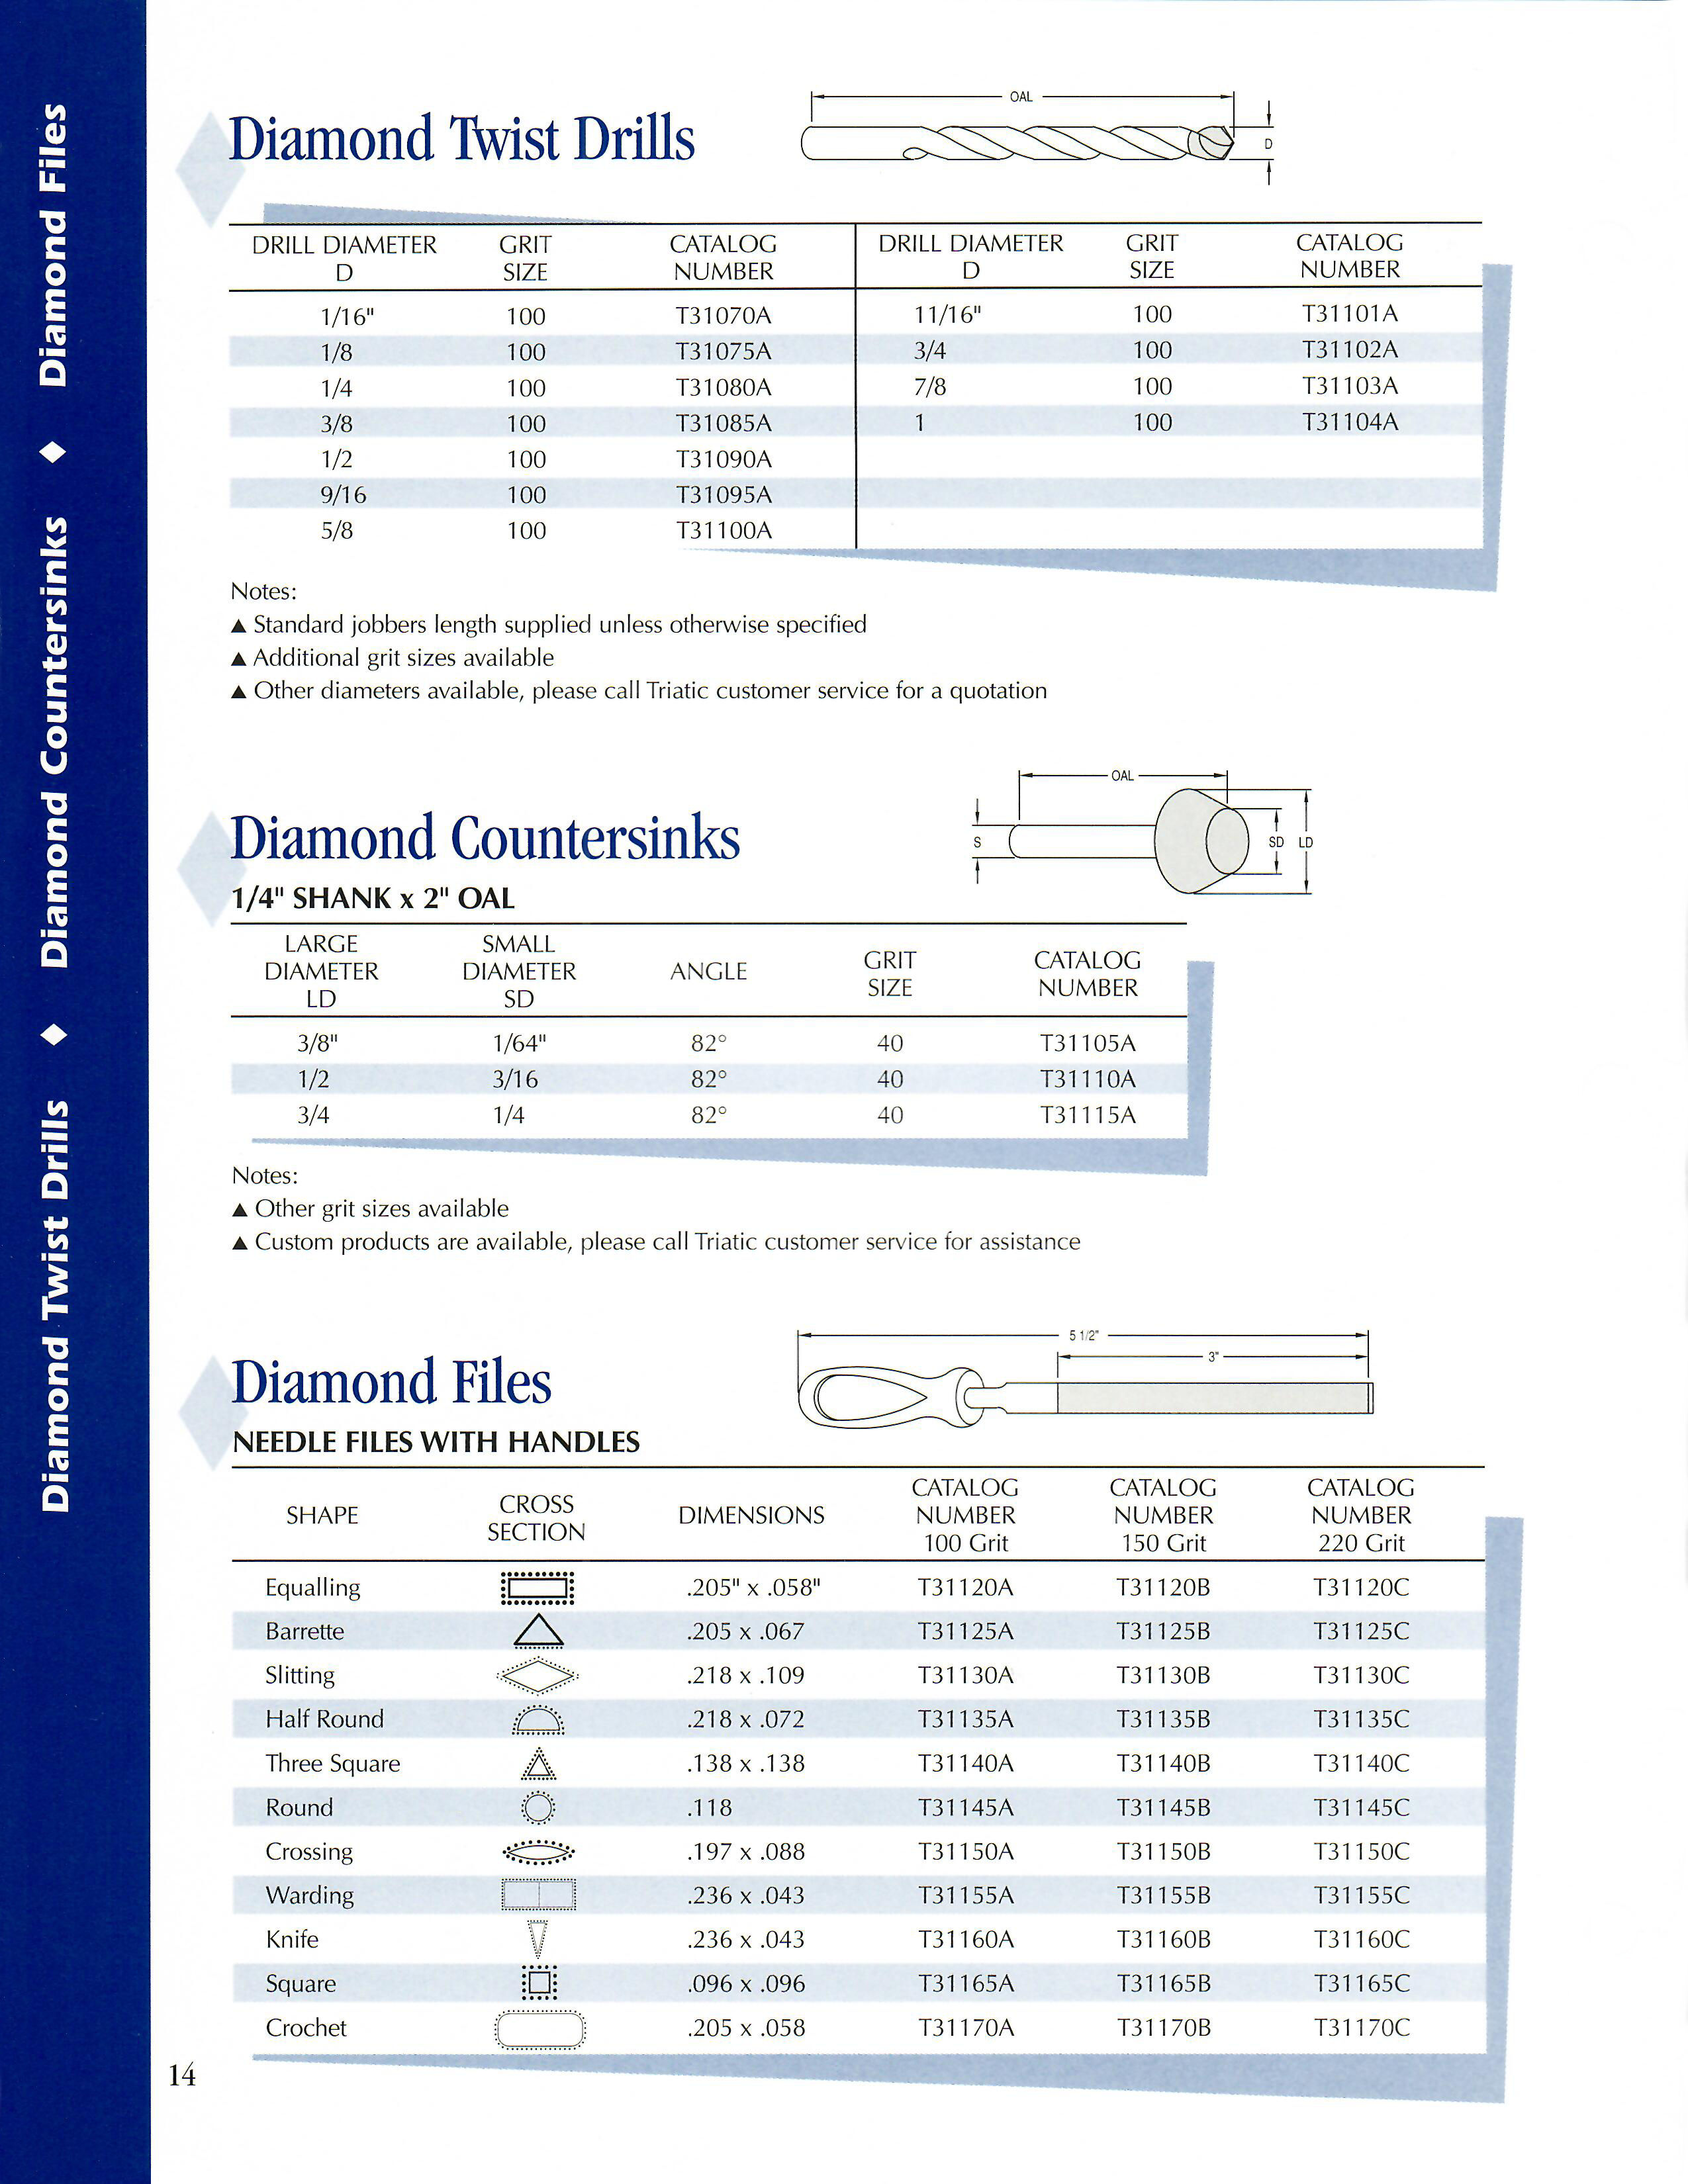 catalog-in-pdf-combined-page-14-image-0001.jpg